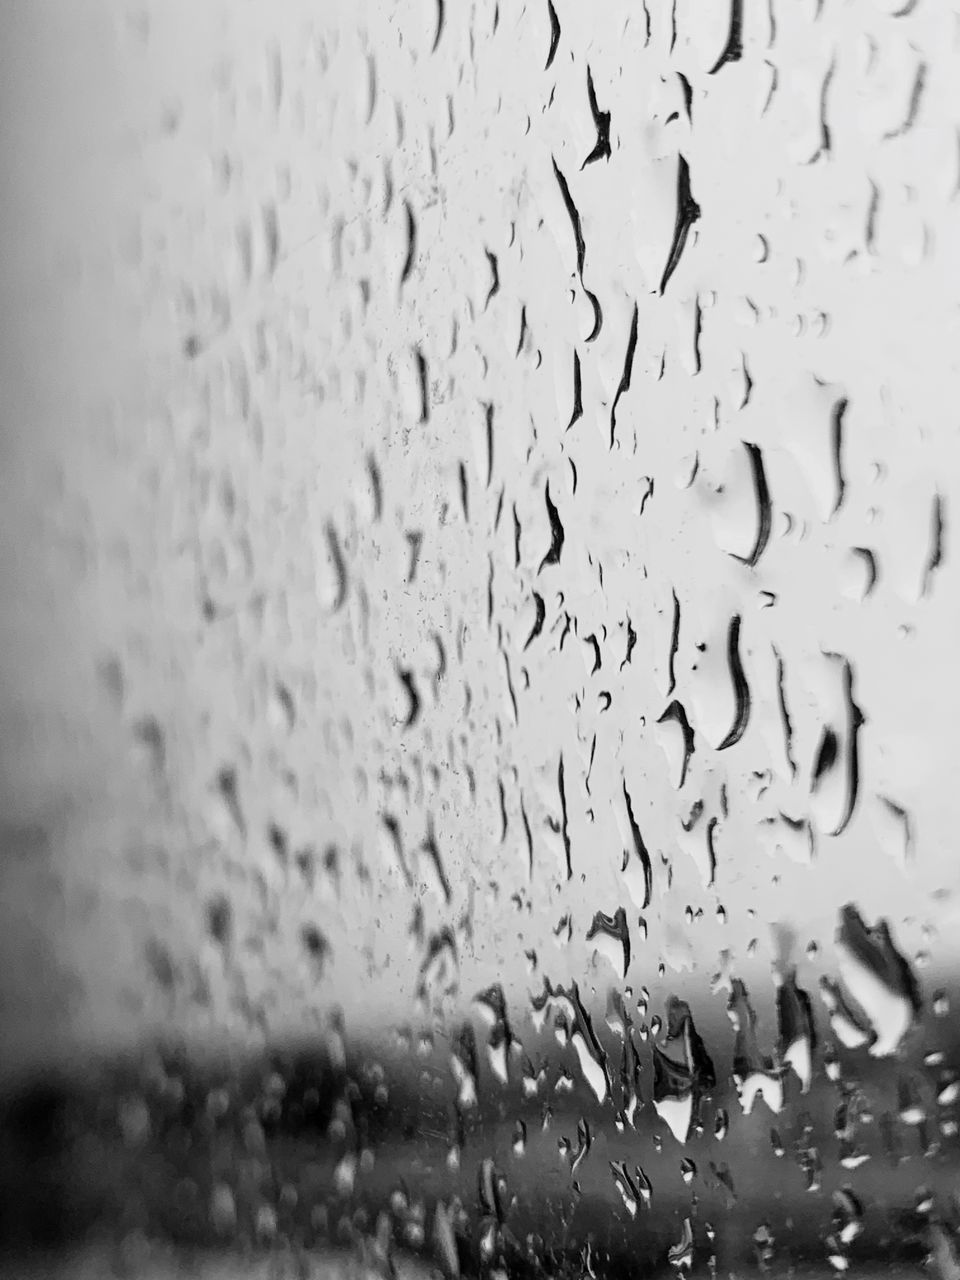 drop, wet, water, glass - material, rain, no people, backgrounds, close-up, transparent, raindrop, window, rainy season, full frame, indoors, day, focus on foreground, nature, monsoon, glass